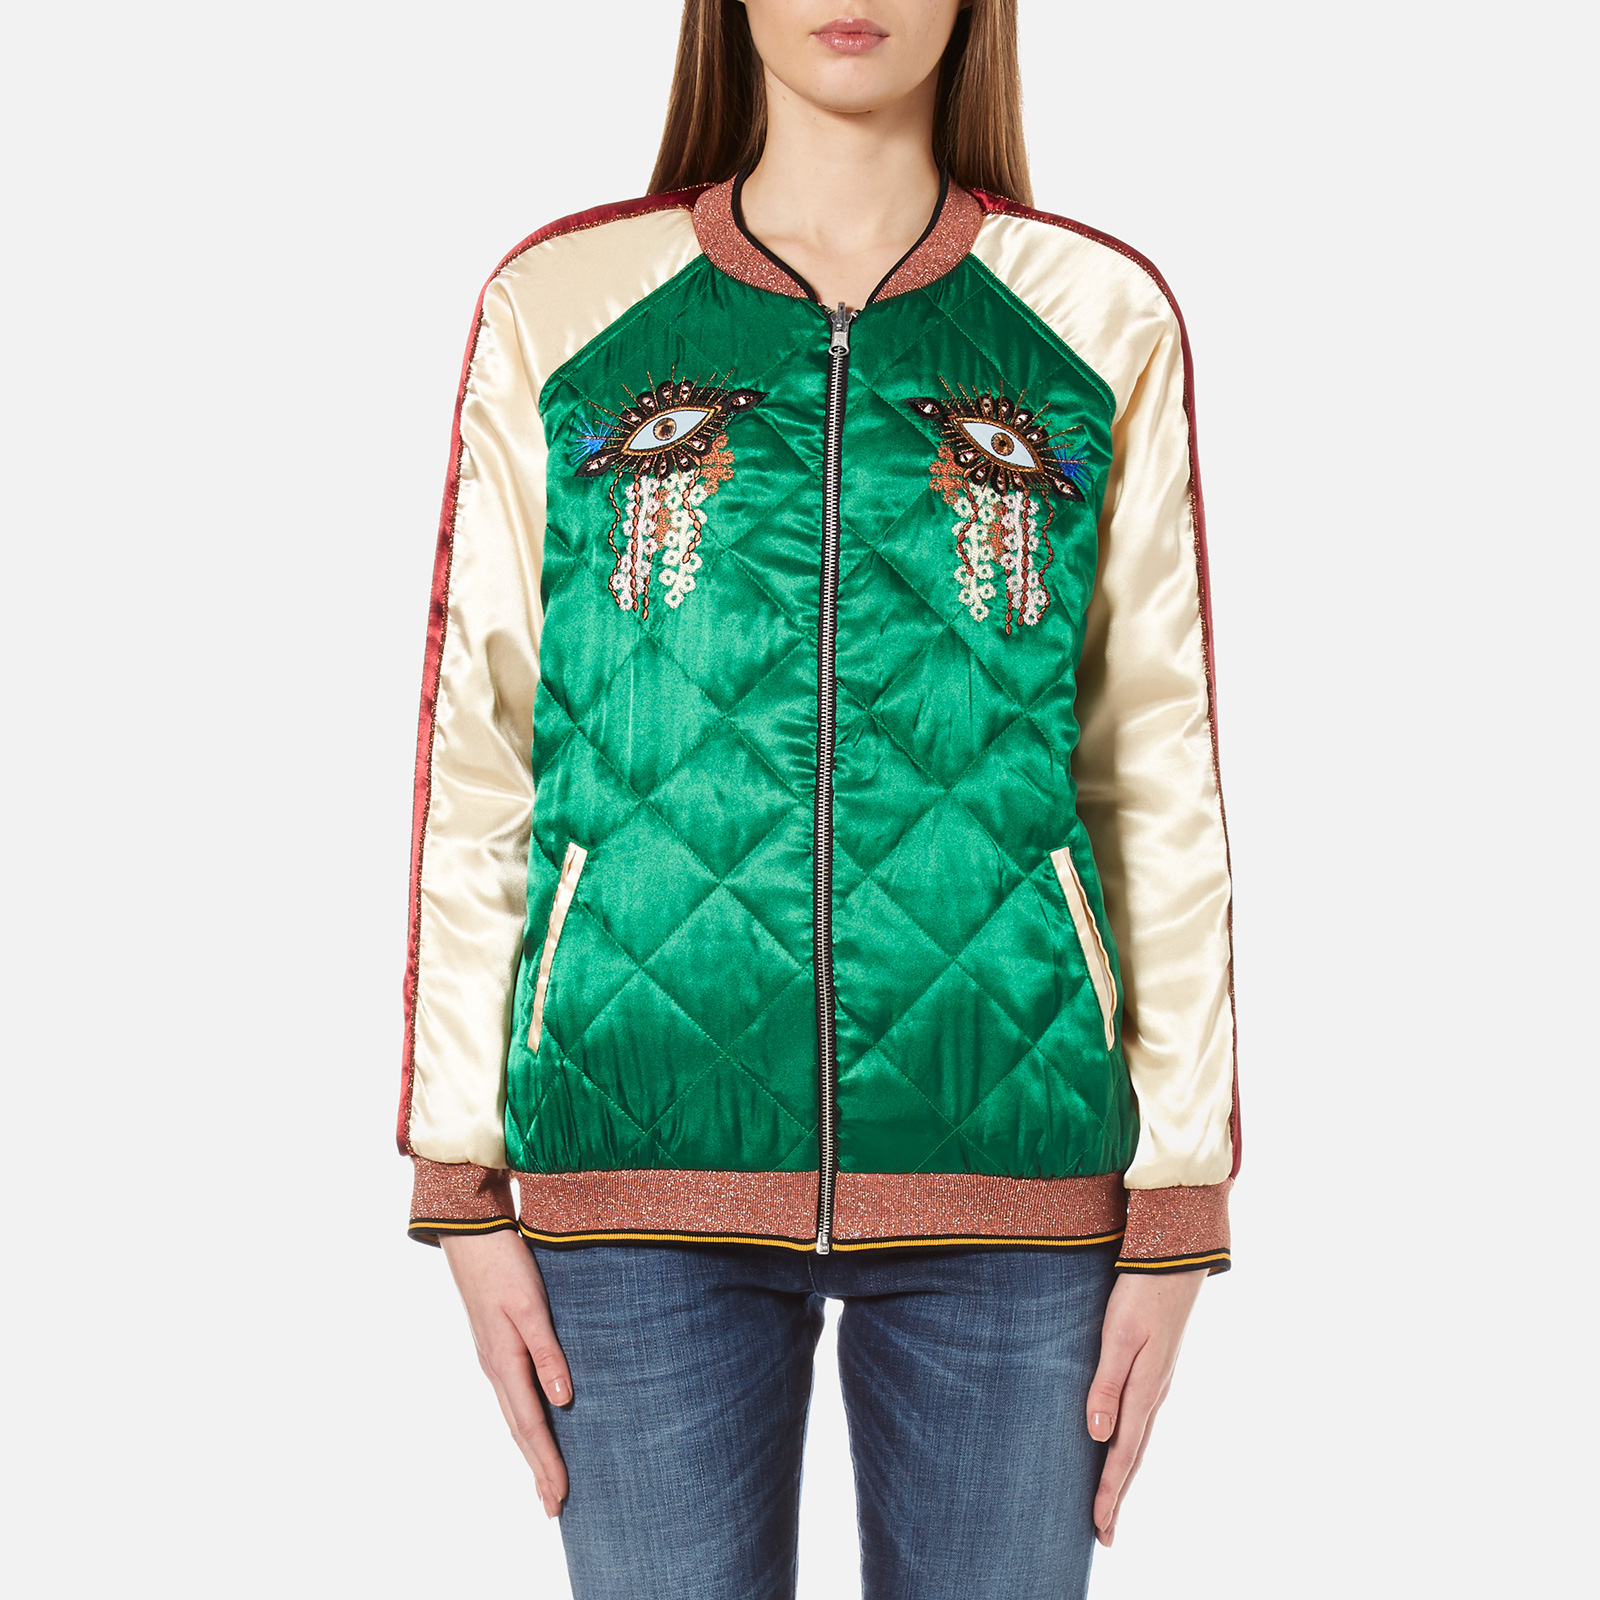 fd85f2d5b Maison Scotch Women's Reversible Relaxed Fit Bomber Jacket with  Embroideries - Multi